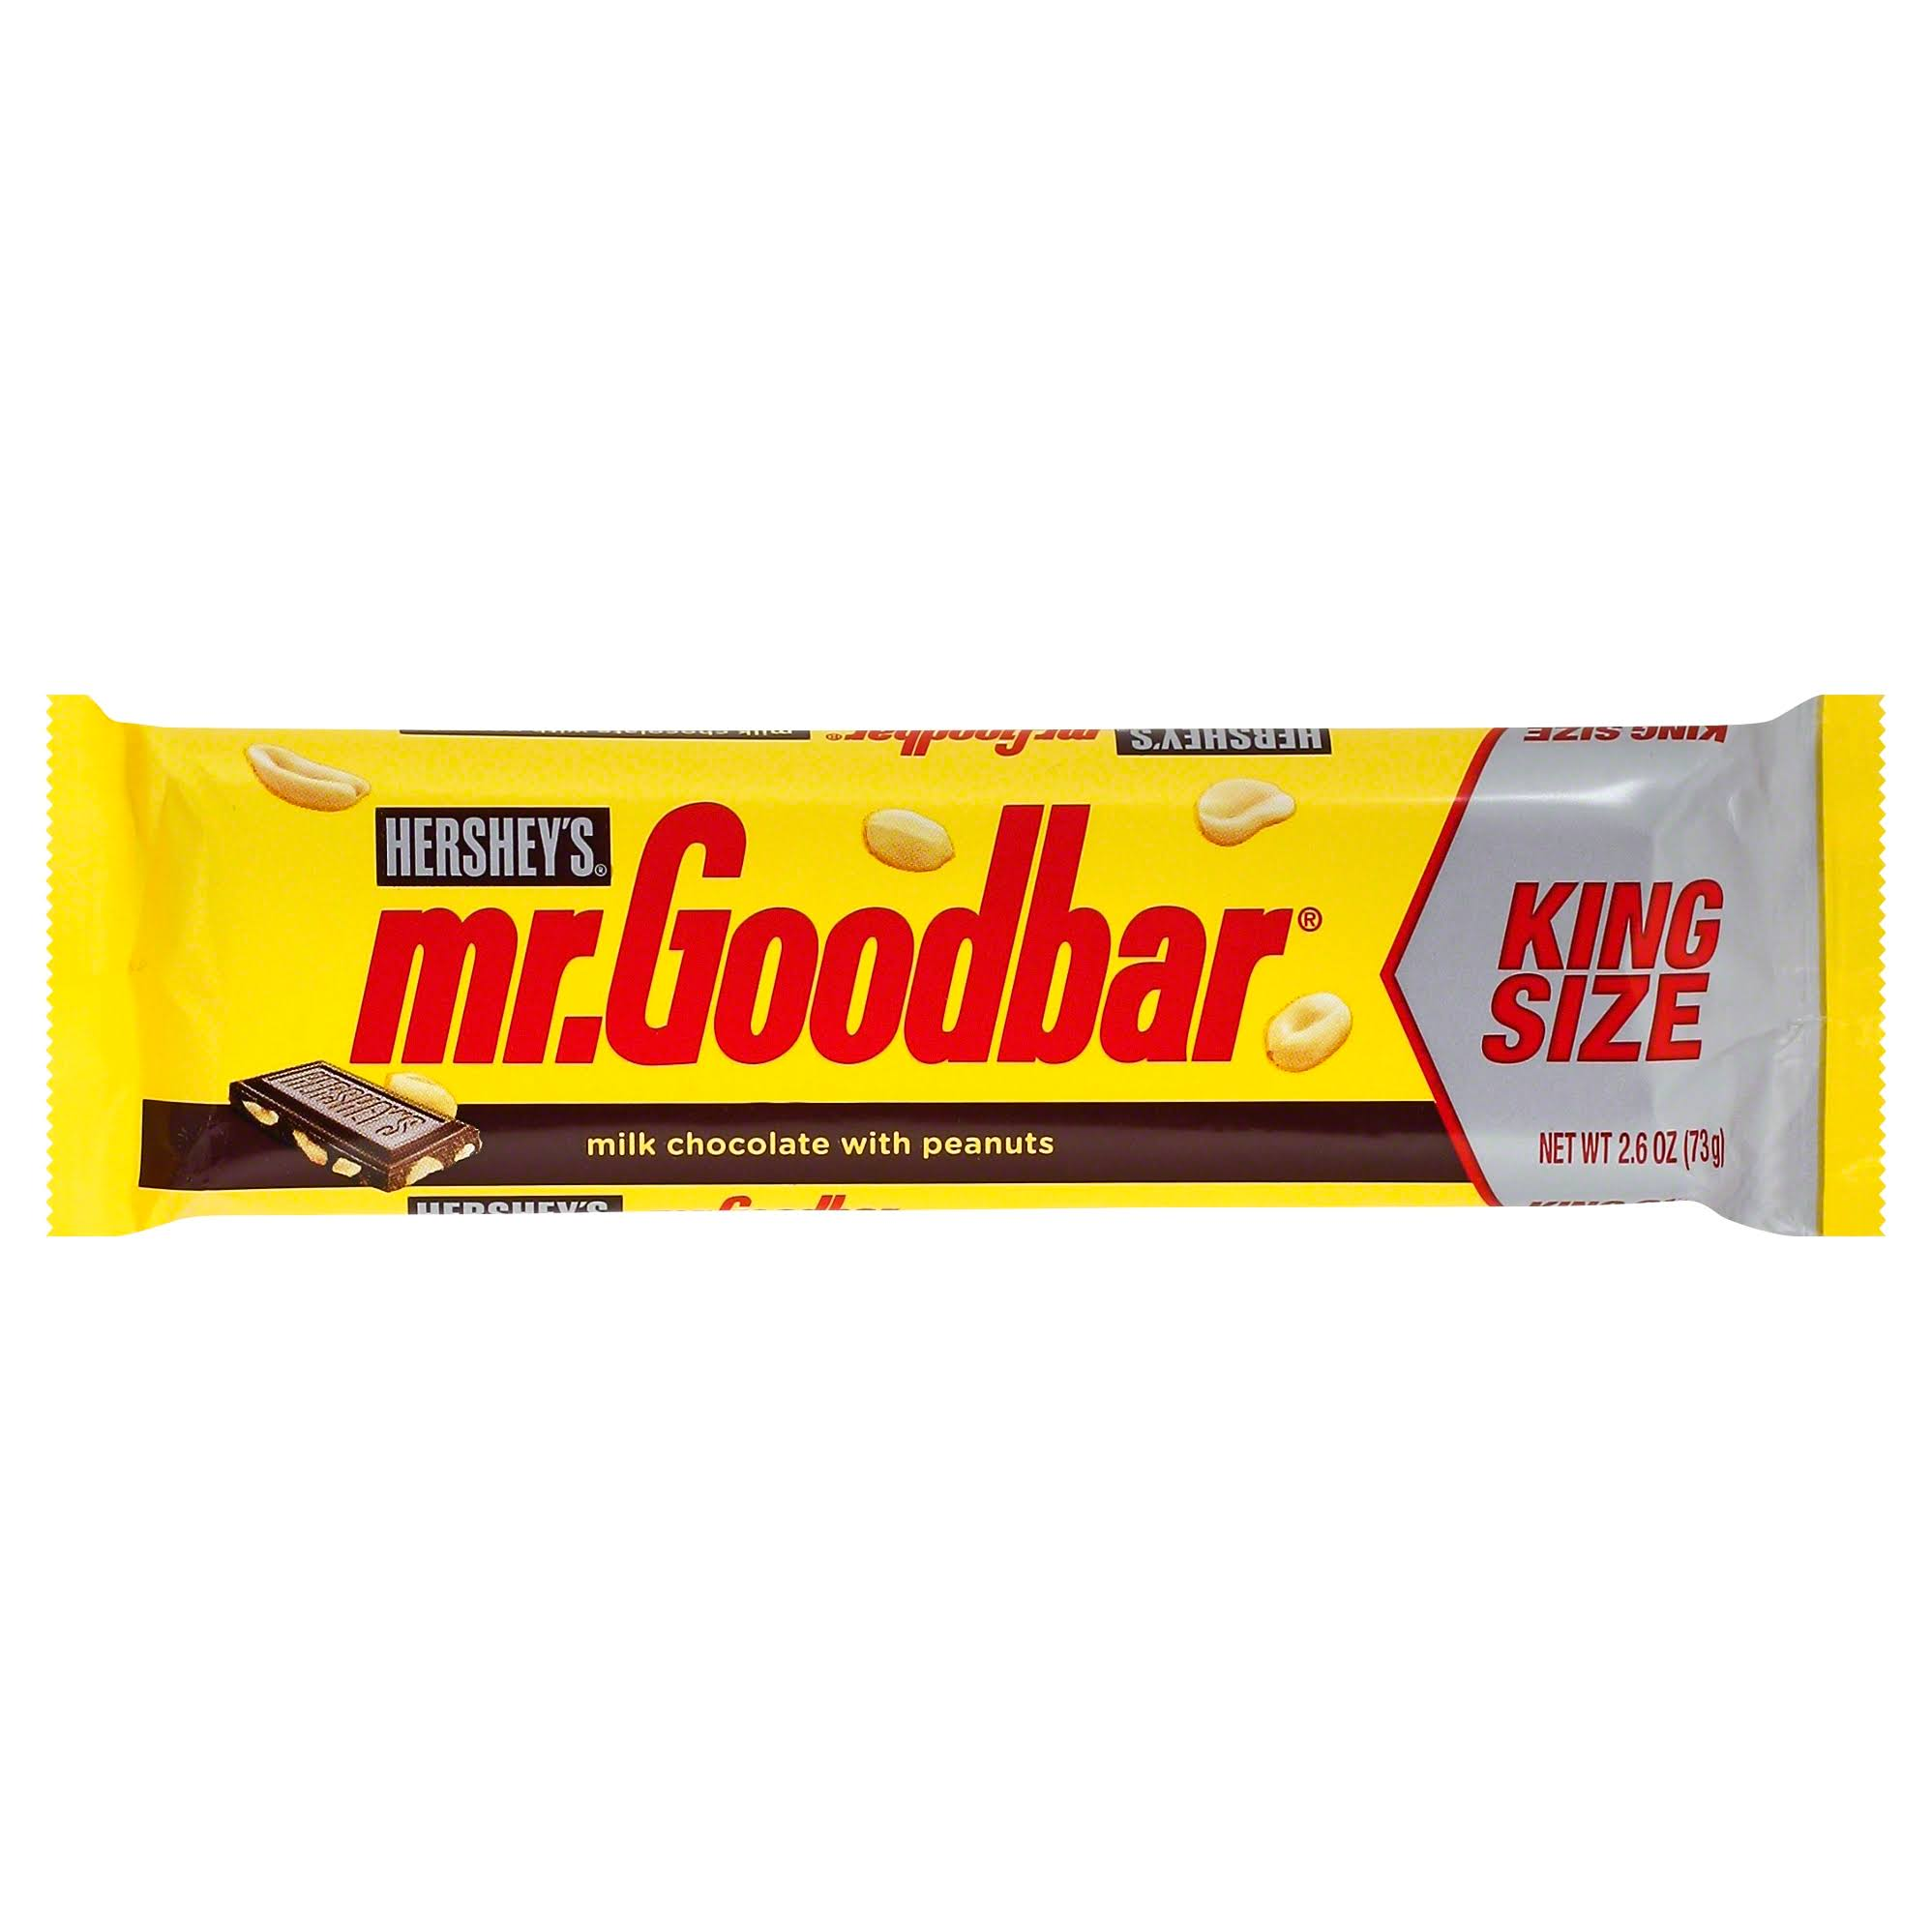 Hershey's Mr. Goodbar Candy Bar - King Size